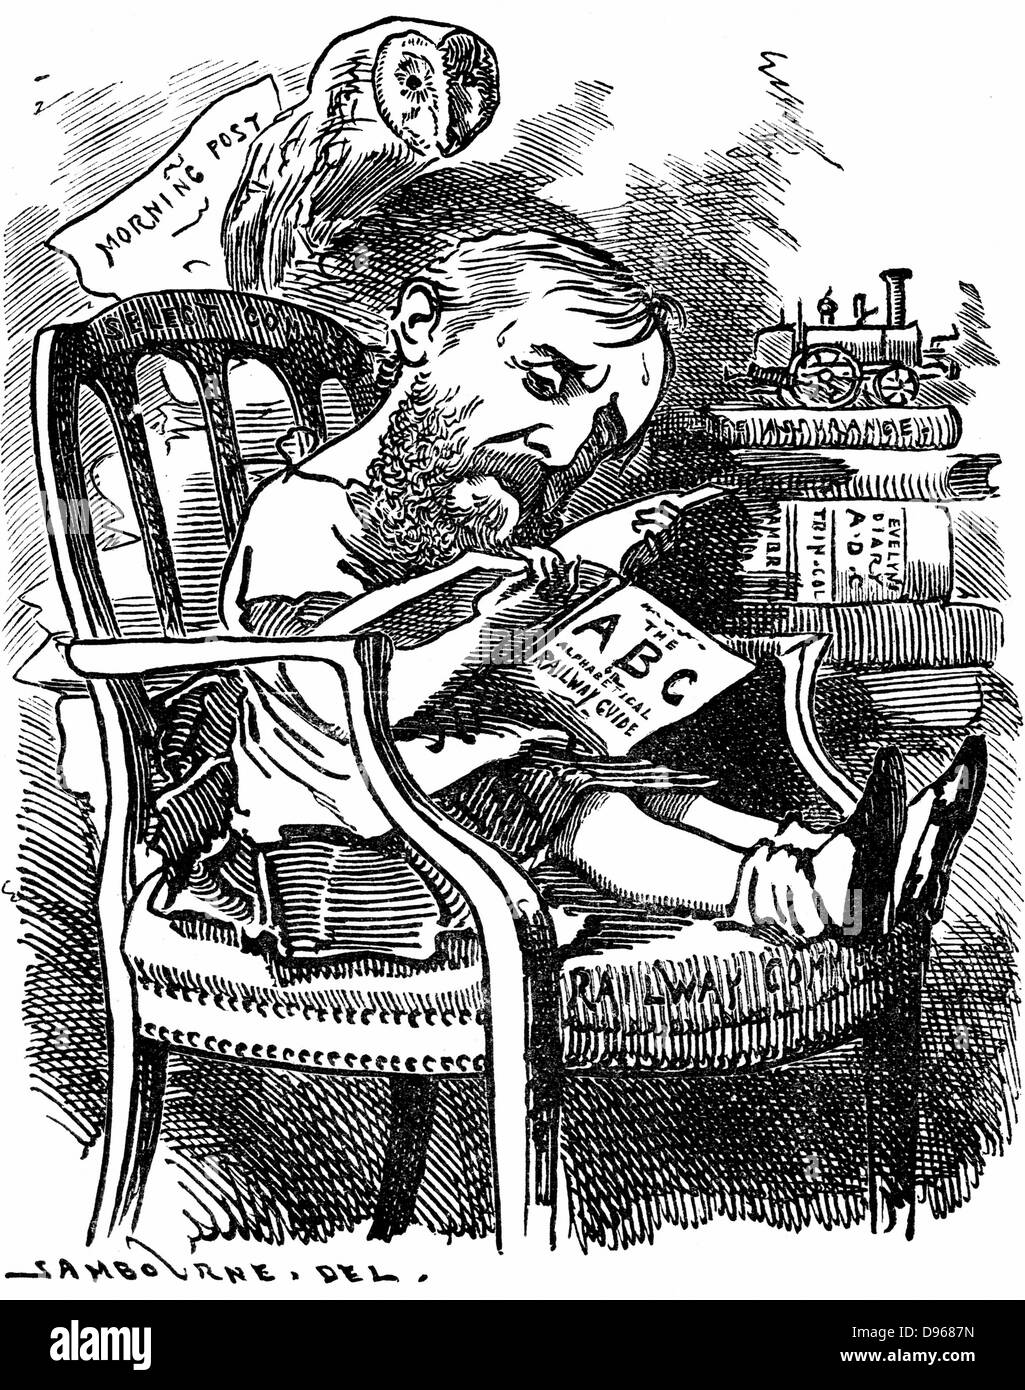 Evelyn Ashley (1836-1907) English author and Liberal politician; son of 7th Earl of Shaftesbury. Cartoon by Edward - Stock Image